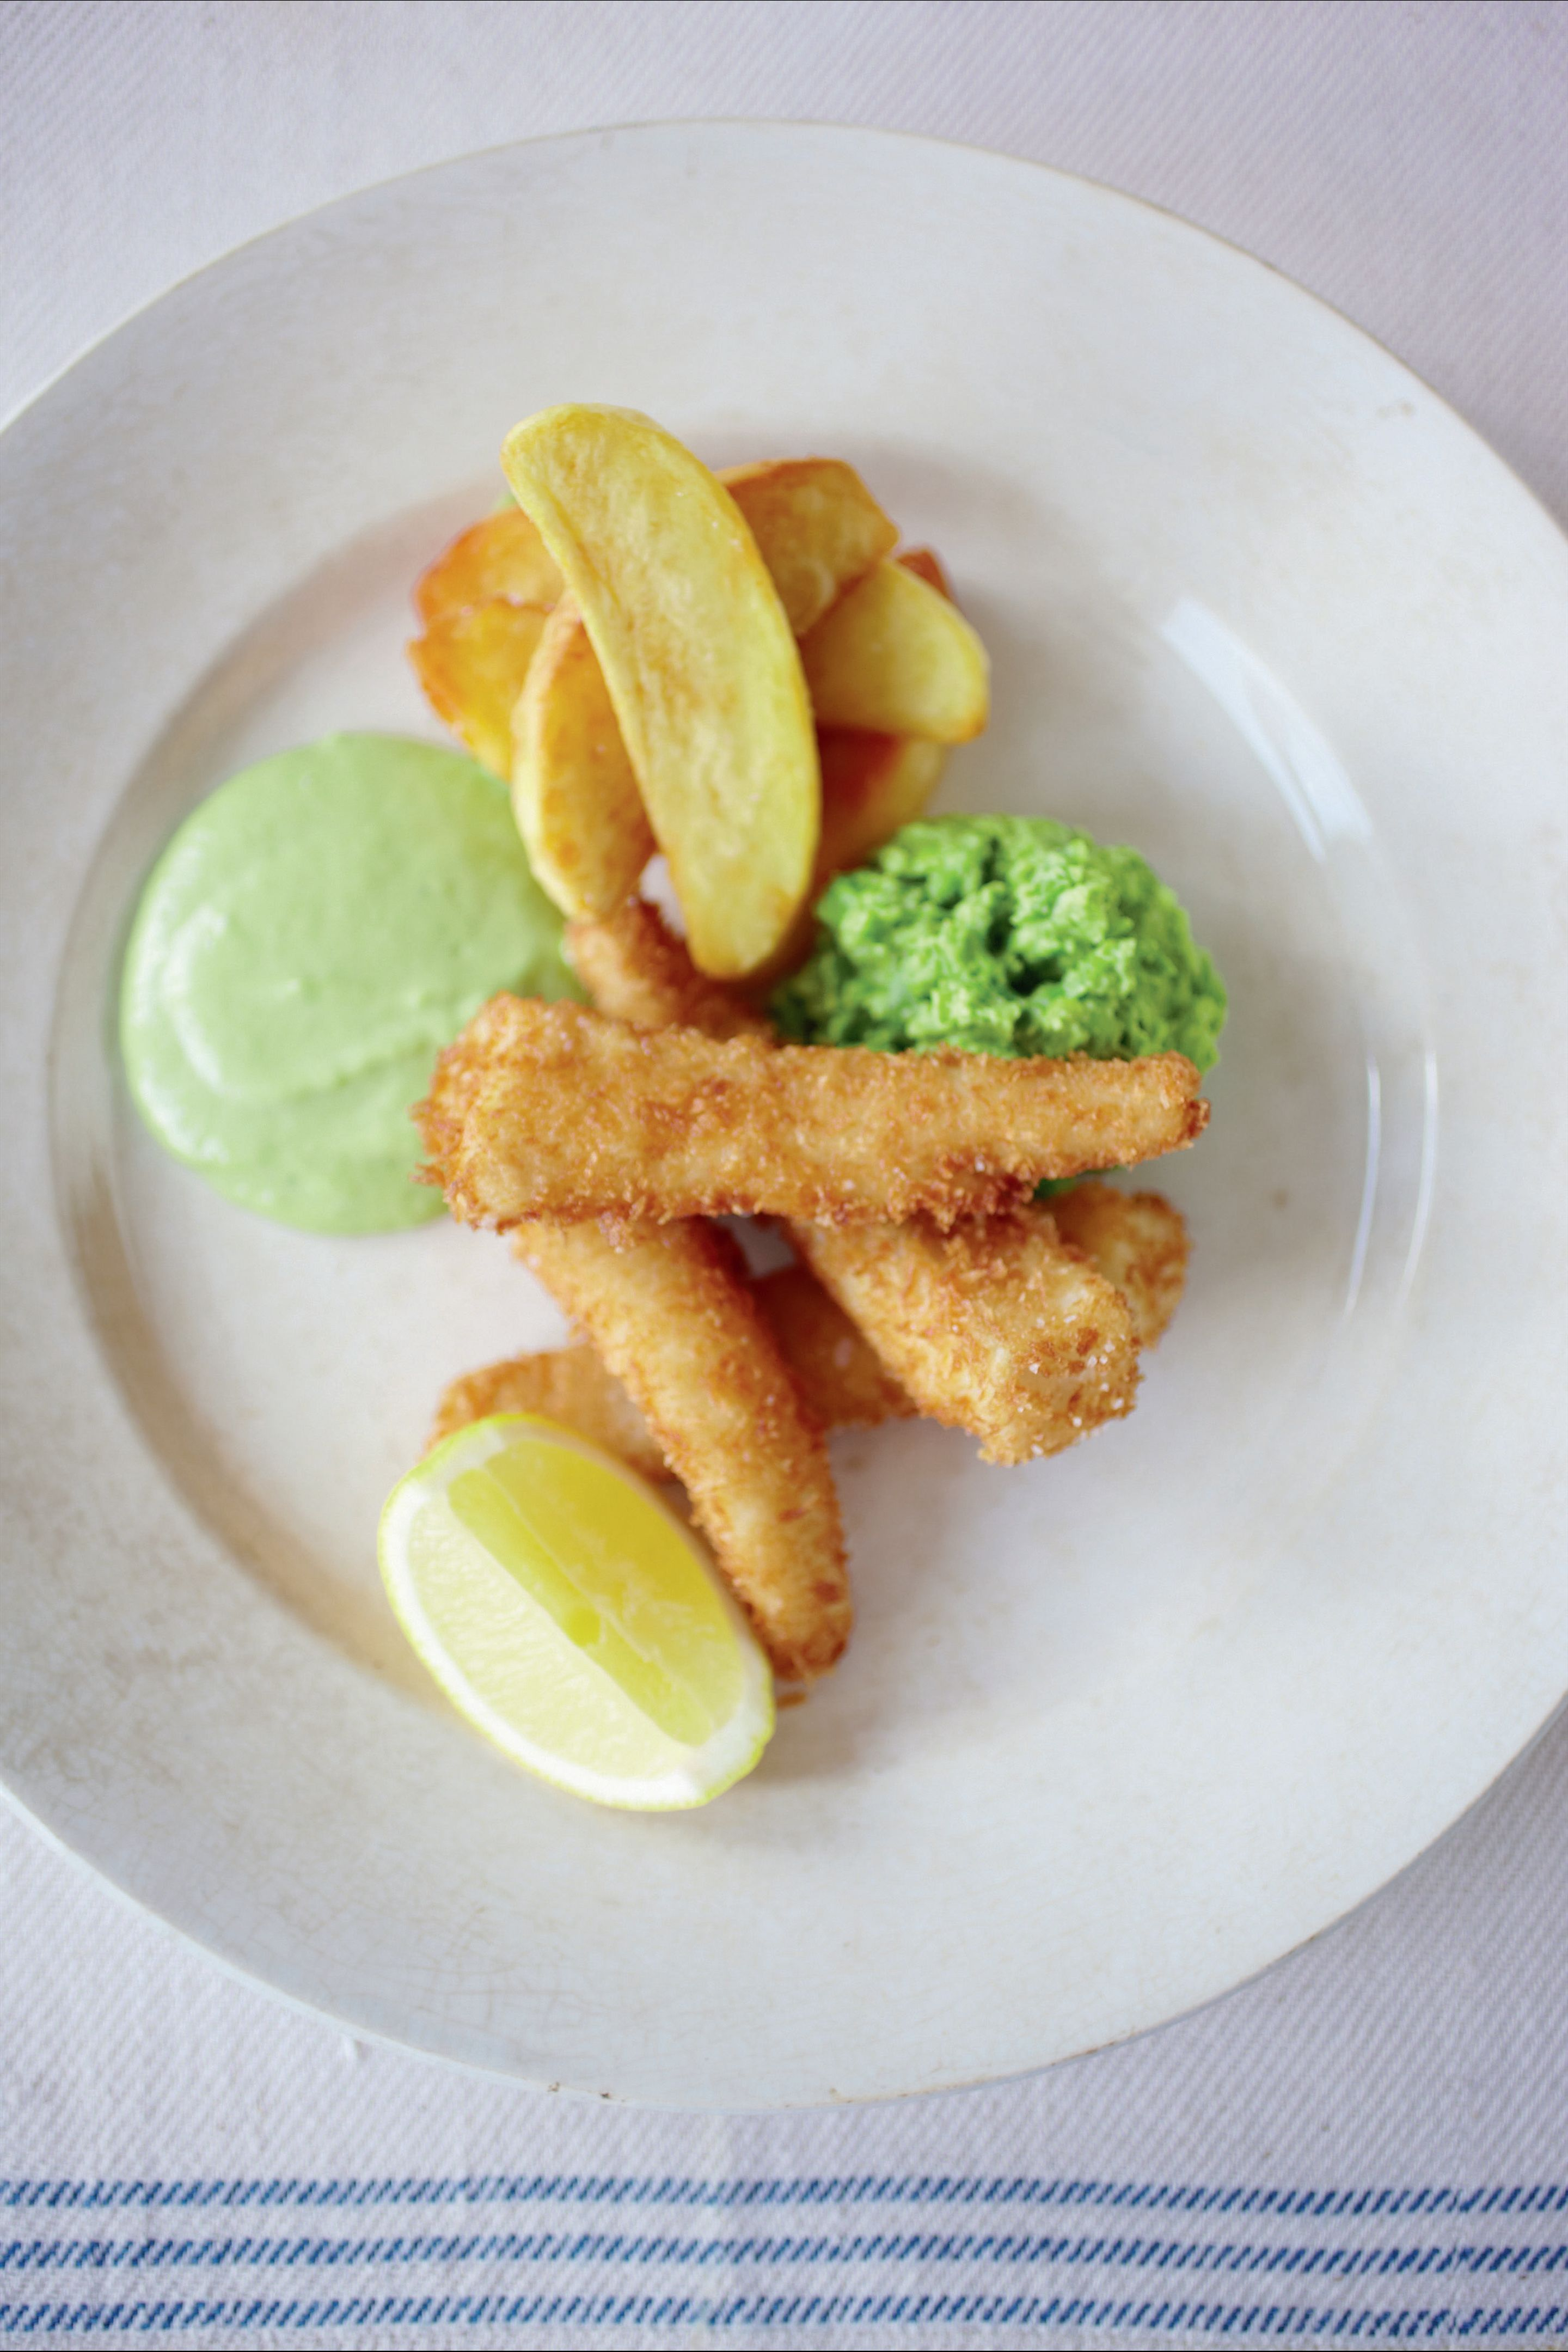 Hake fish fingers with Pete's chips, mushy peas and herb emulsion